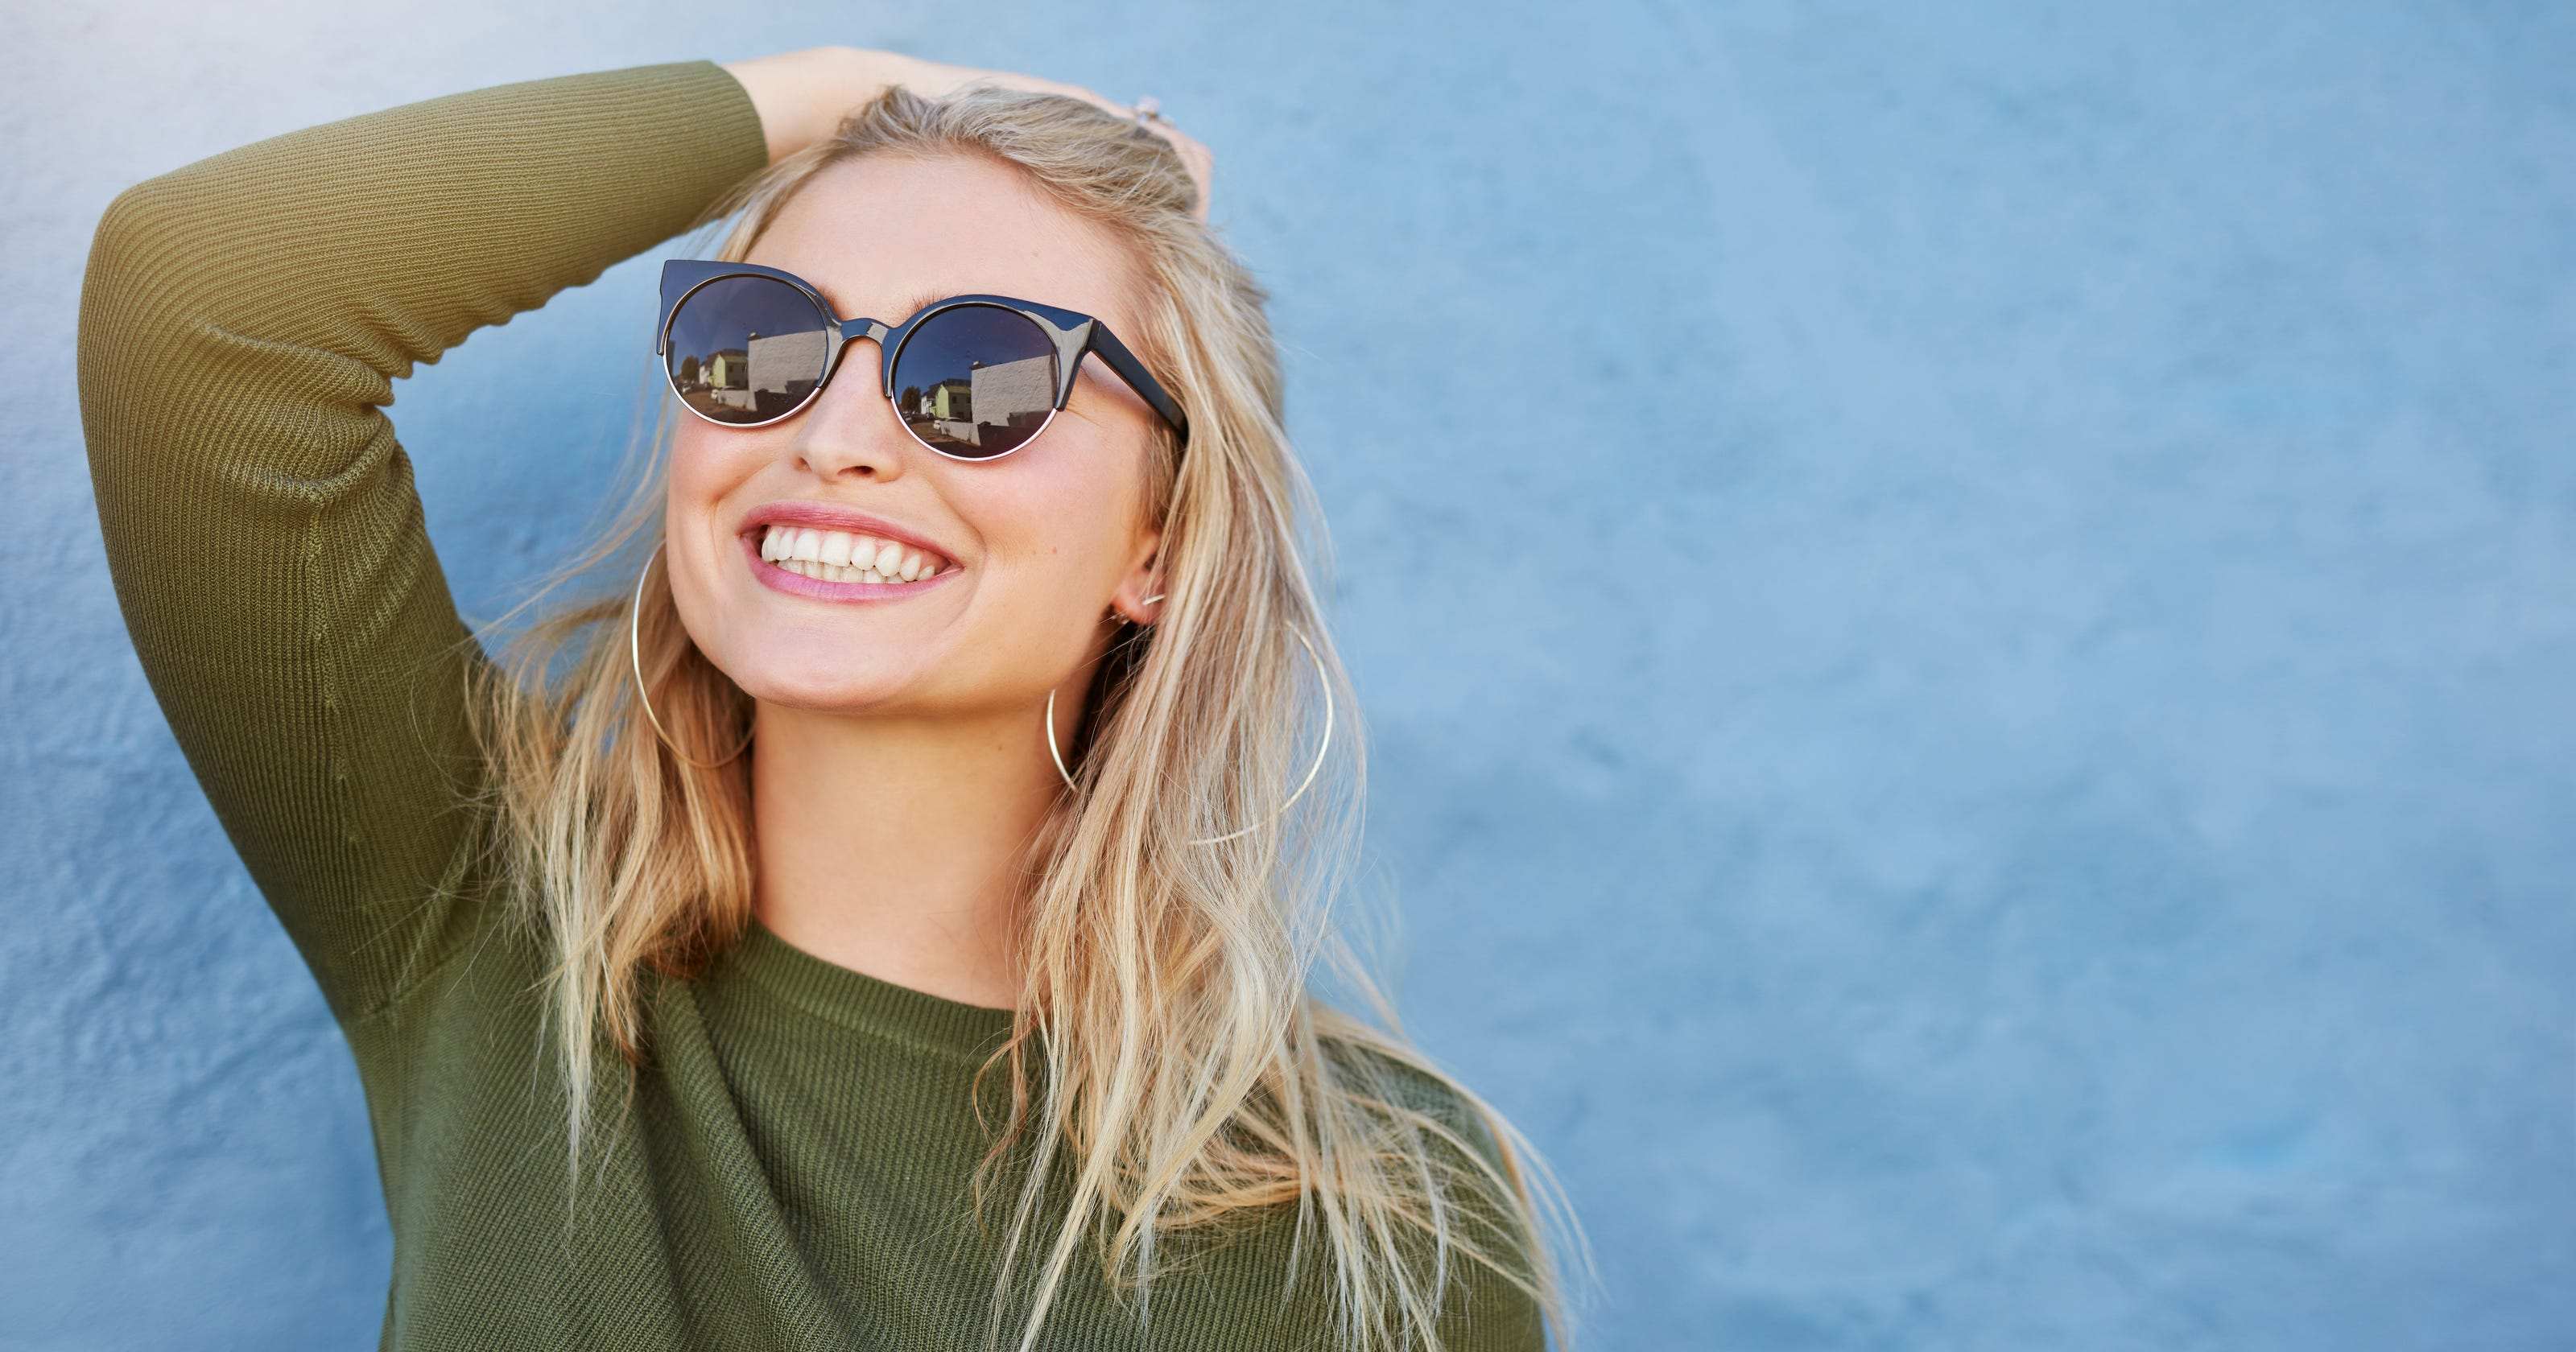 44c44e0a345 Sun protection  Eye wear is just as important as sunscreen